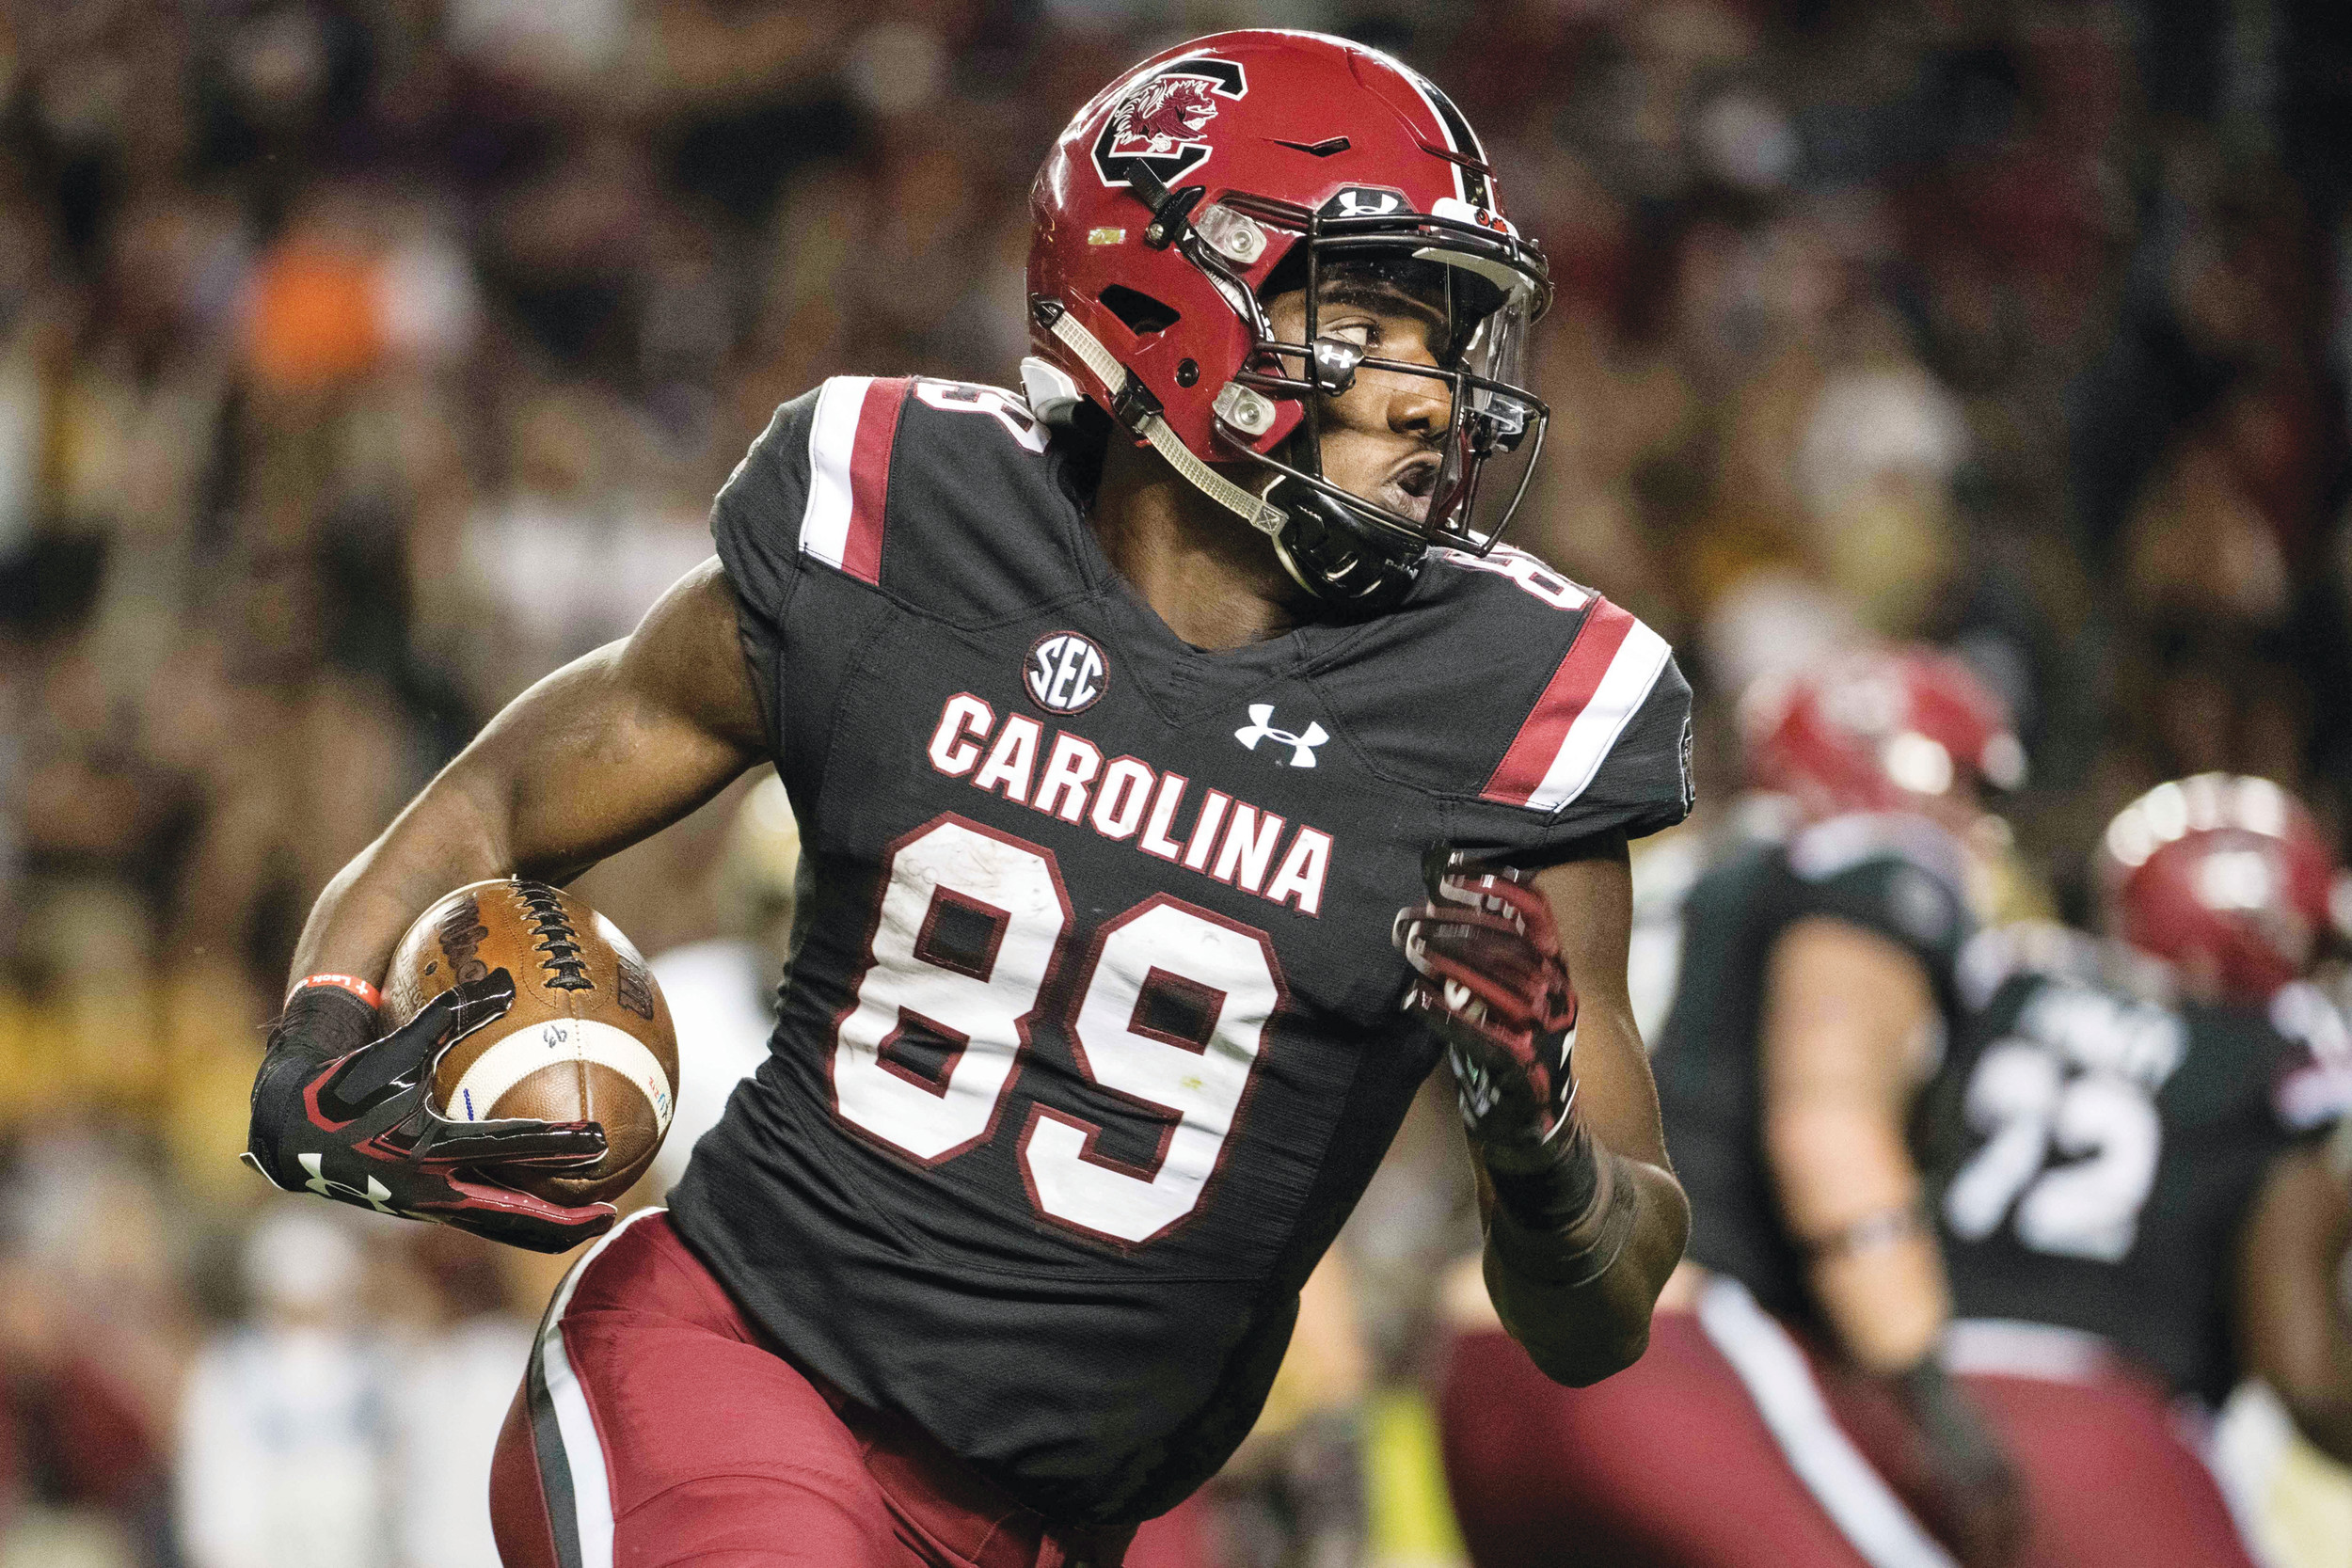 South Carolina wide receiver Bryan Edwards (89) and the rest of the Gamecocks are looking to make some amends for last season's 56-7 drubbing at the hands of Clemson when the teams meet on Saturday in Columbia.